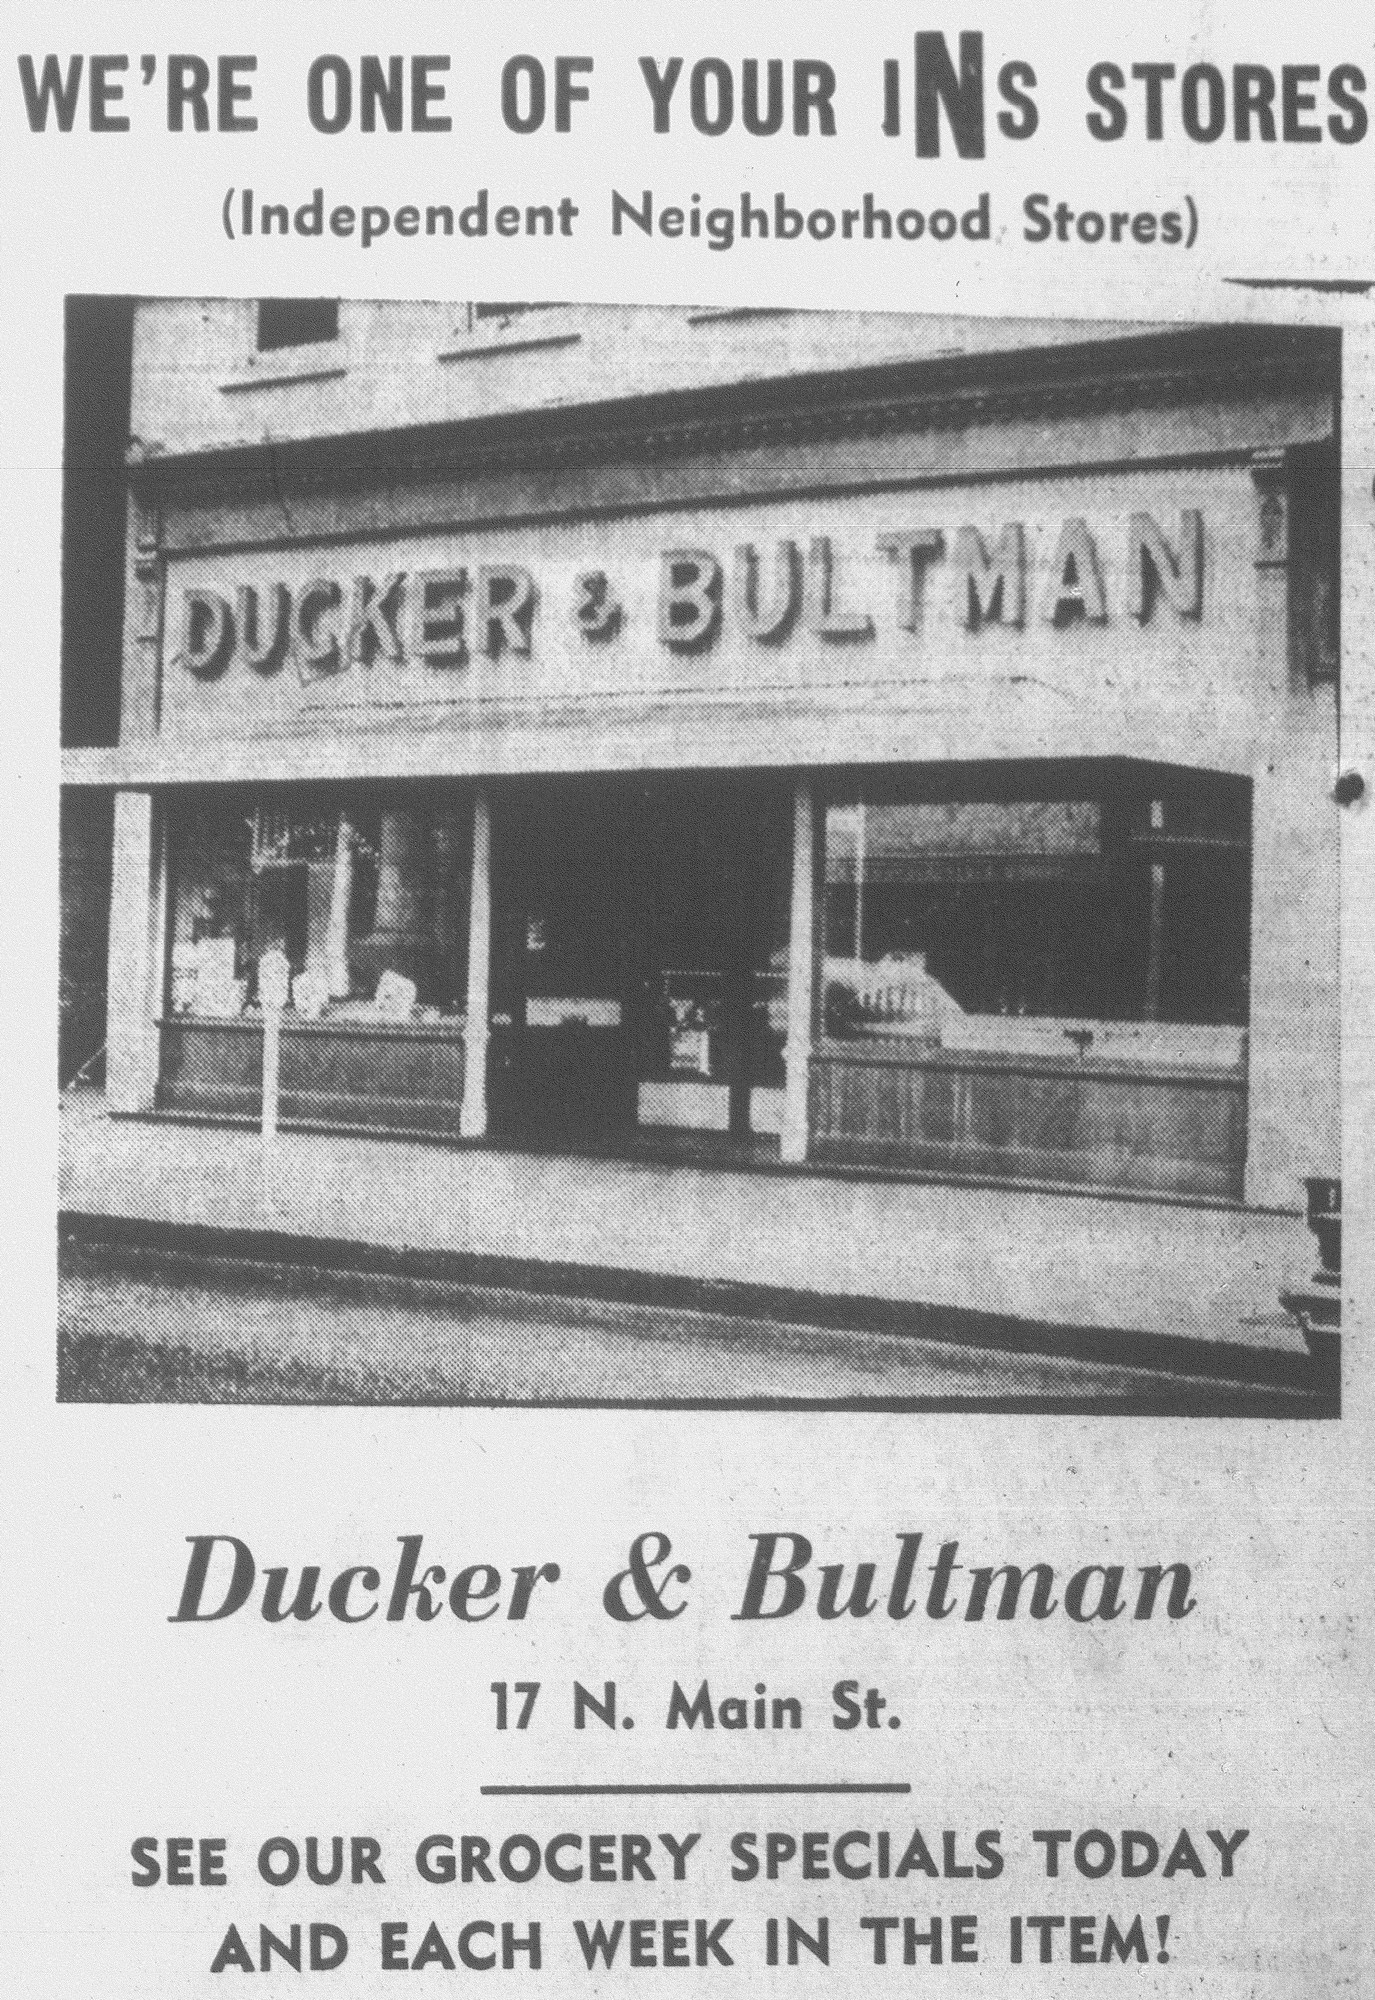 Ducker & Bultman was an early grocery store next to the Opera House on Main Street.